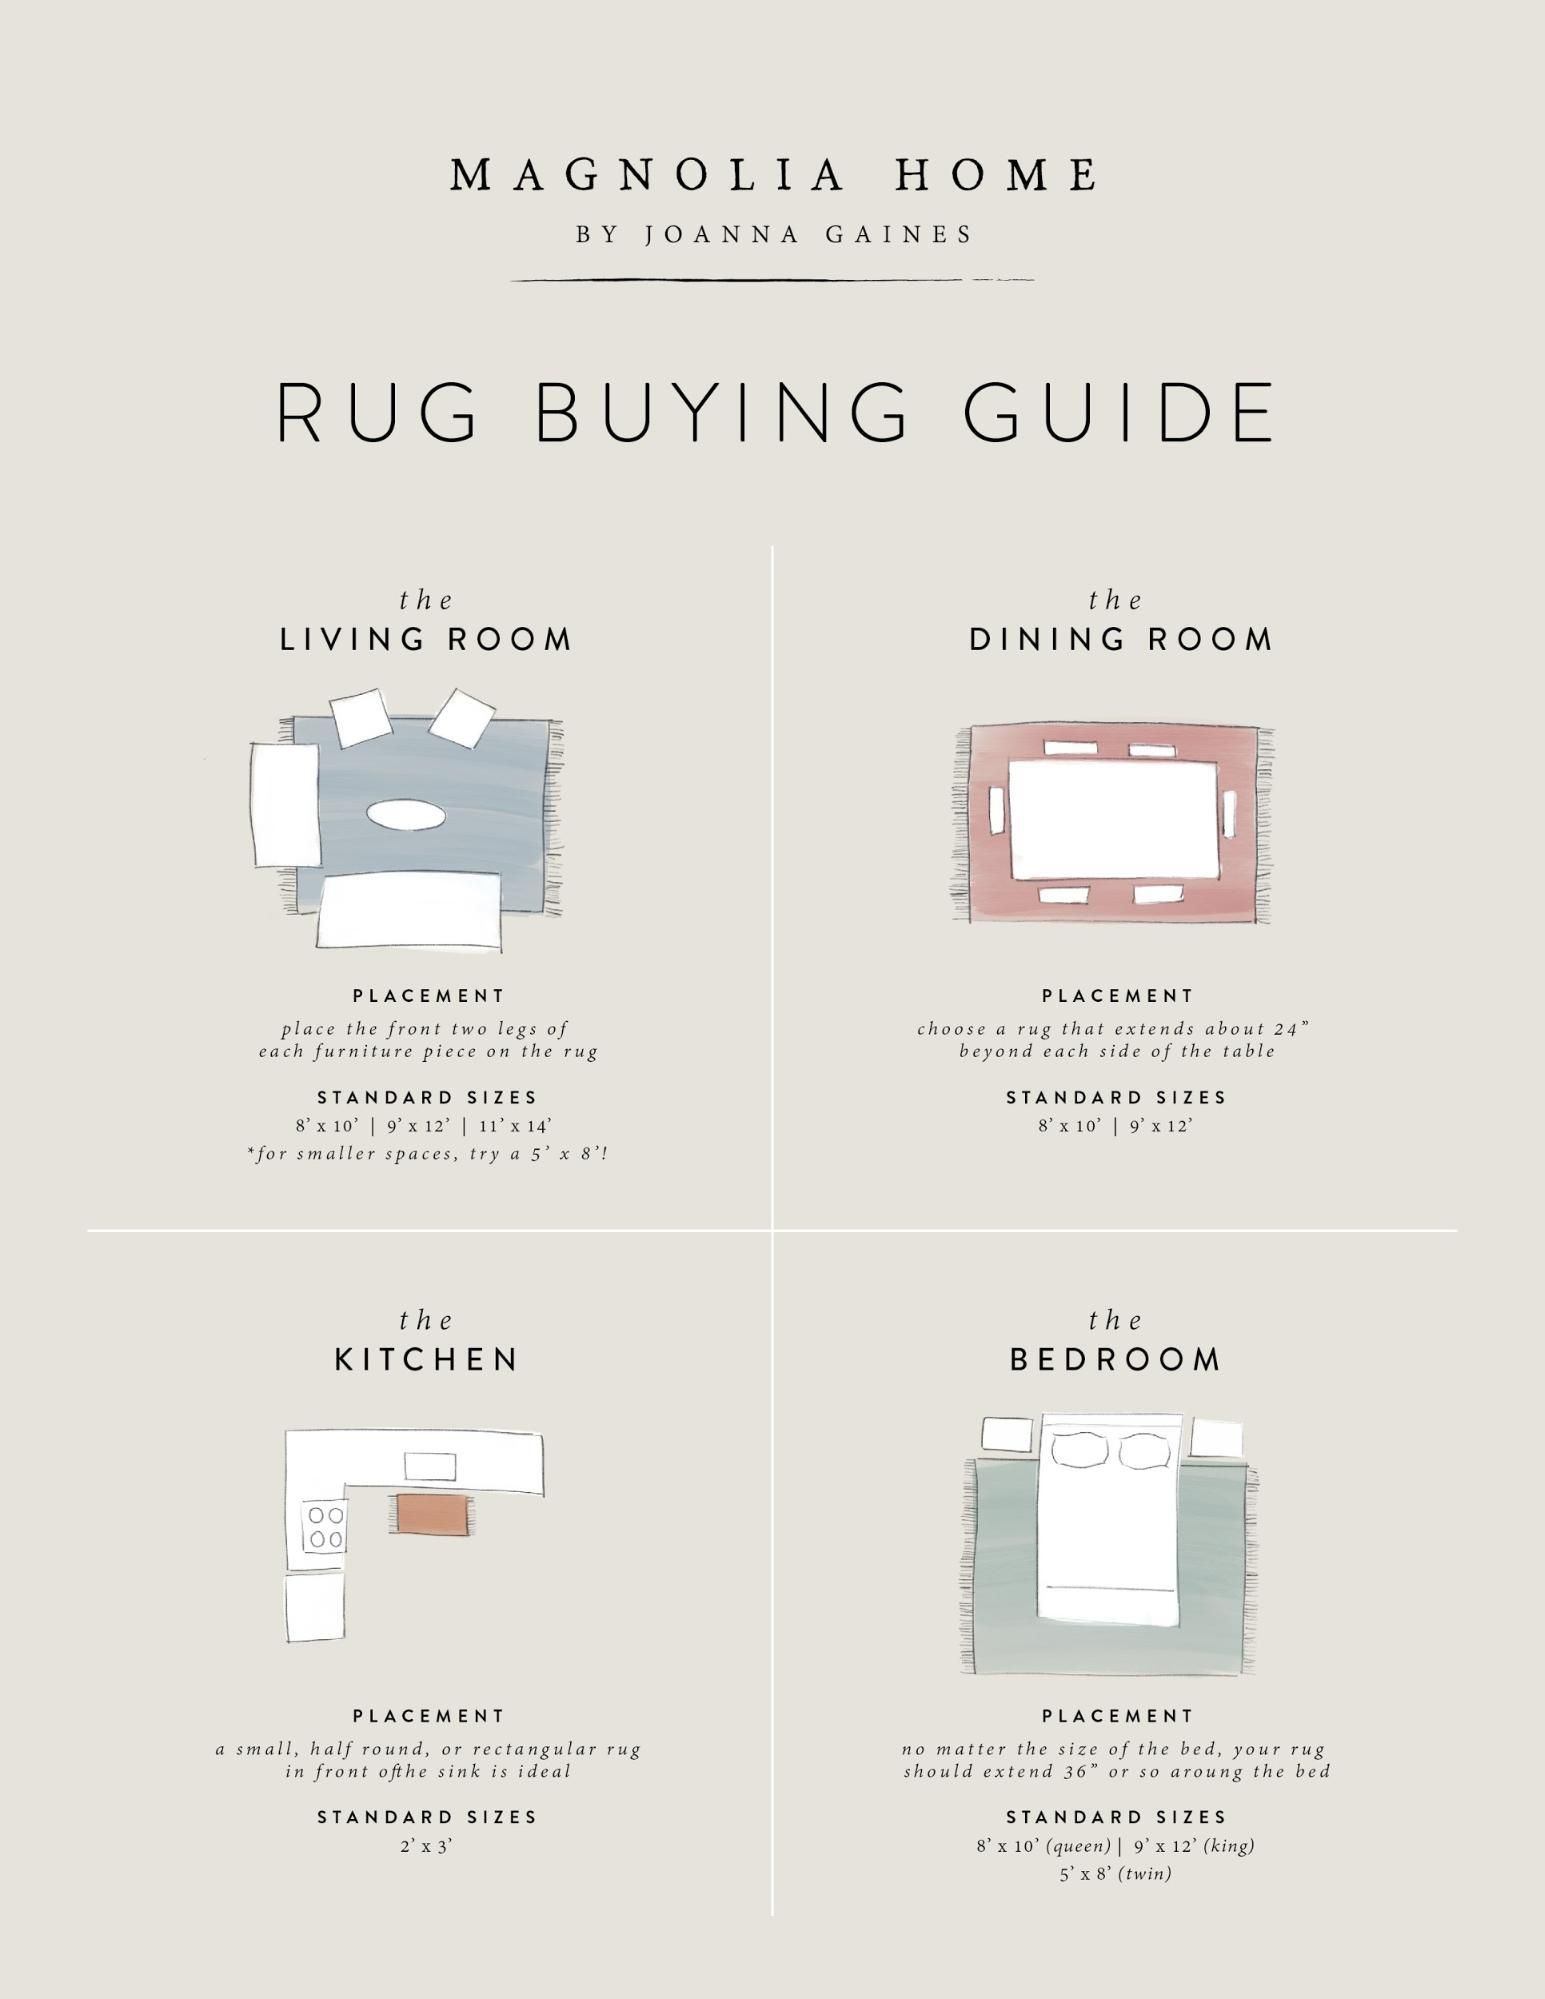 Choosing The Best Rug For Your Space With Images Magnolia Home